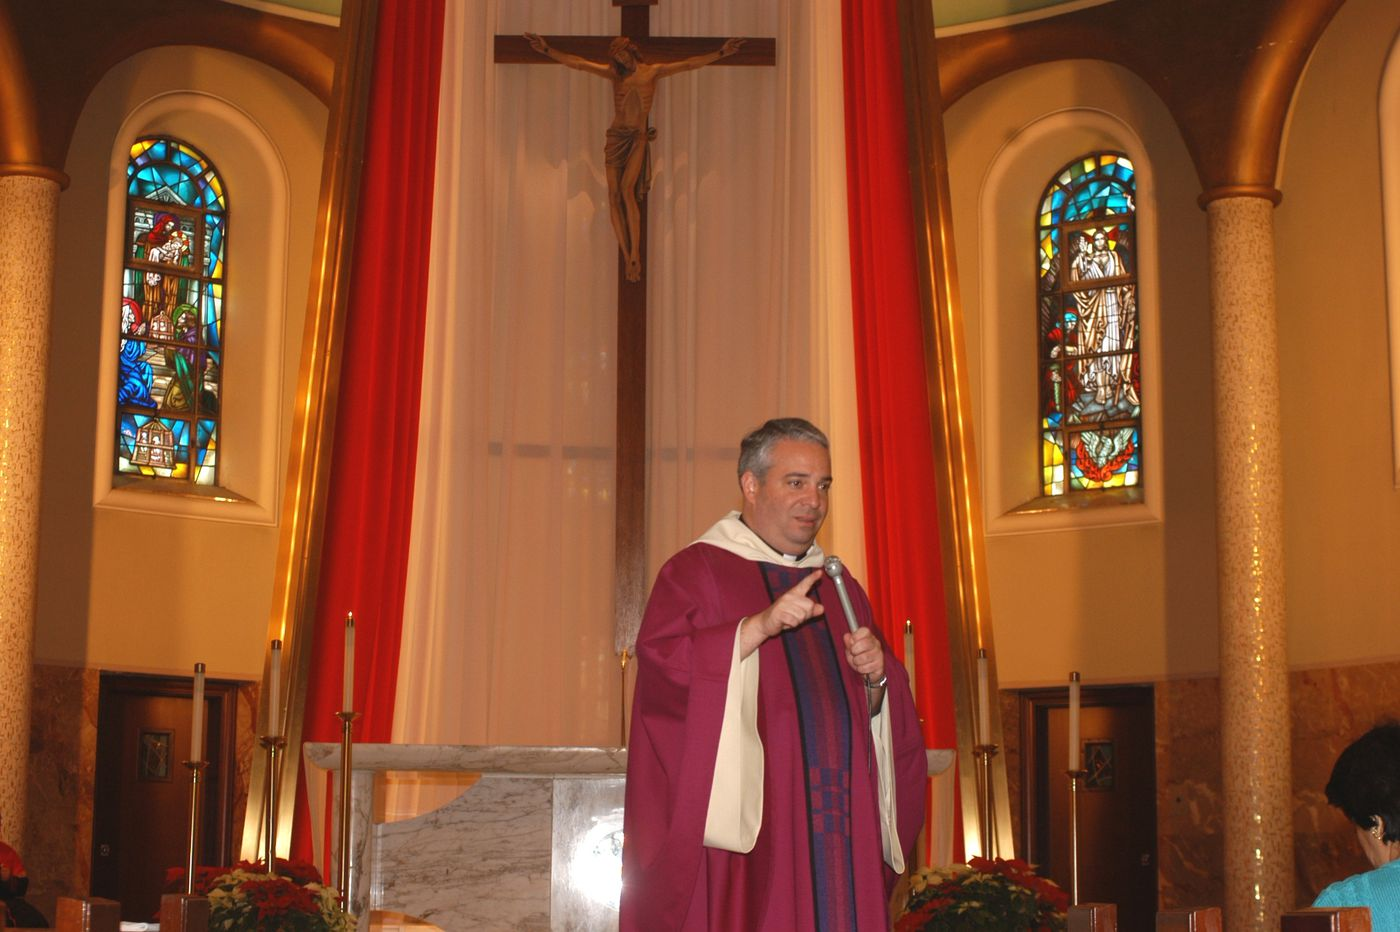 Nelson Pérez helped St. William church evolve. Up next: the whole Archdiocese of Philadelphia. | Perspective